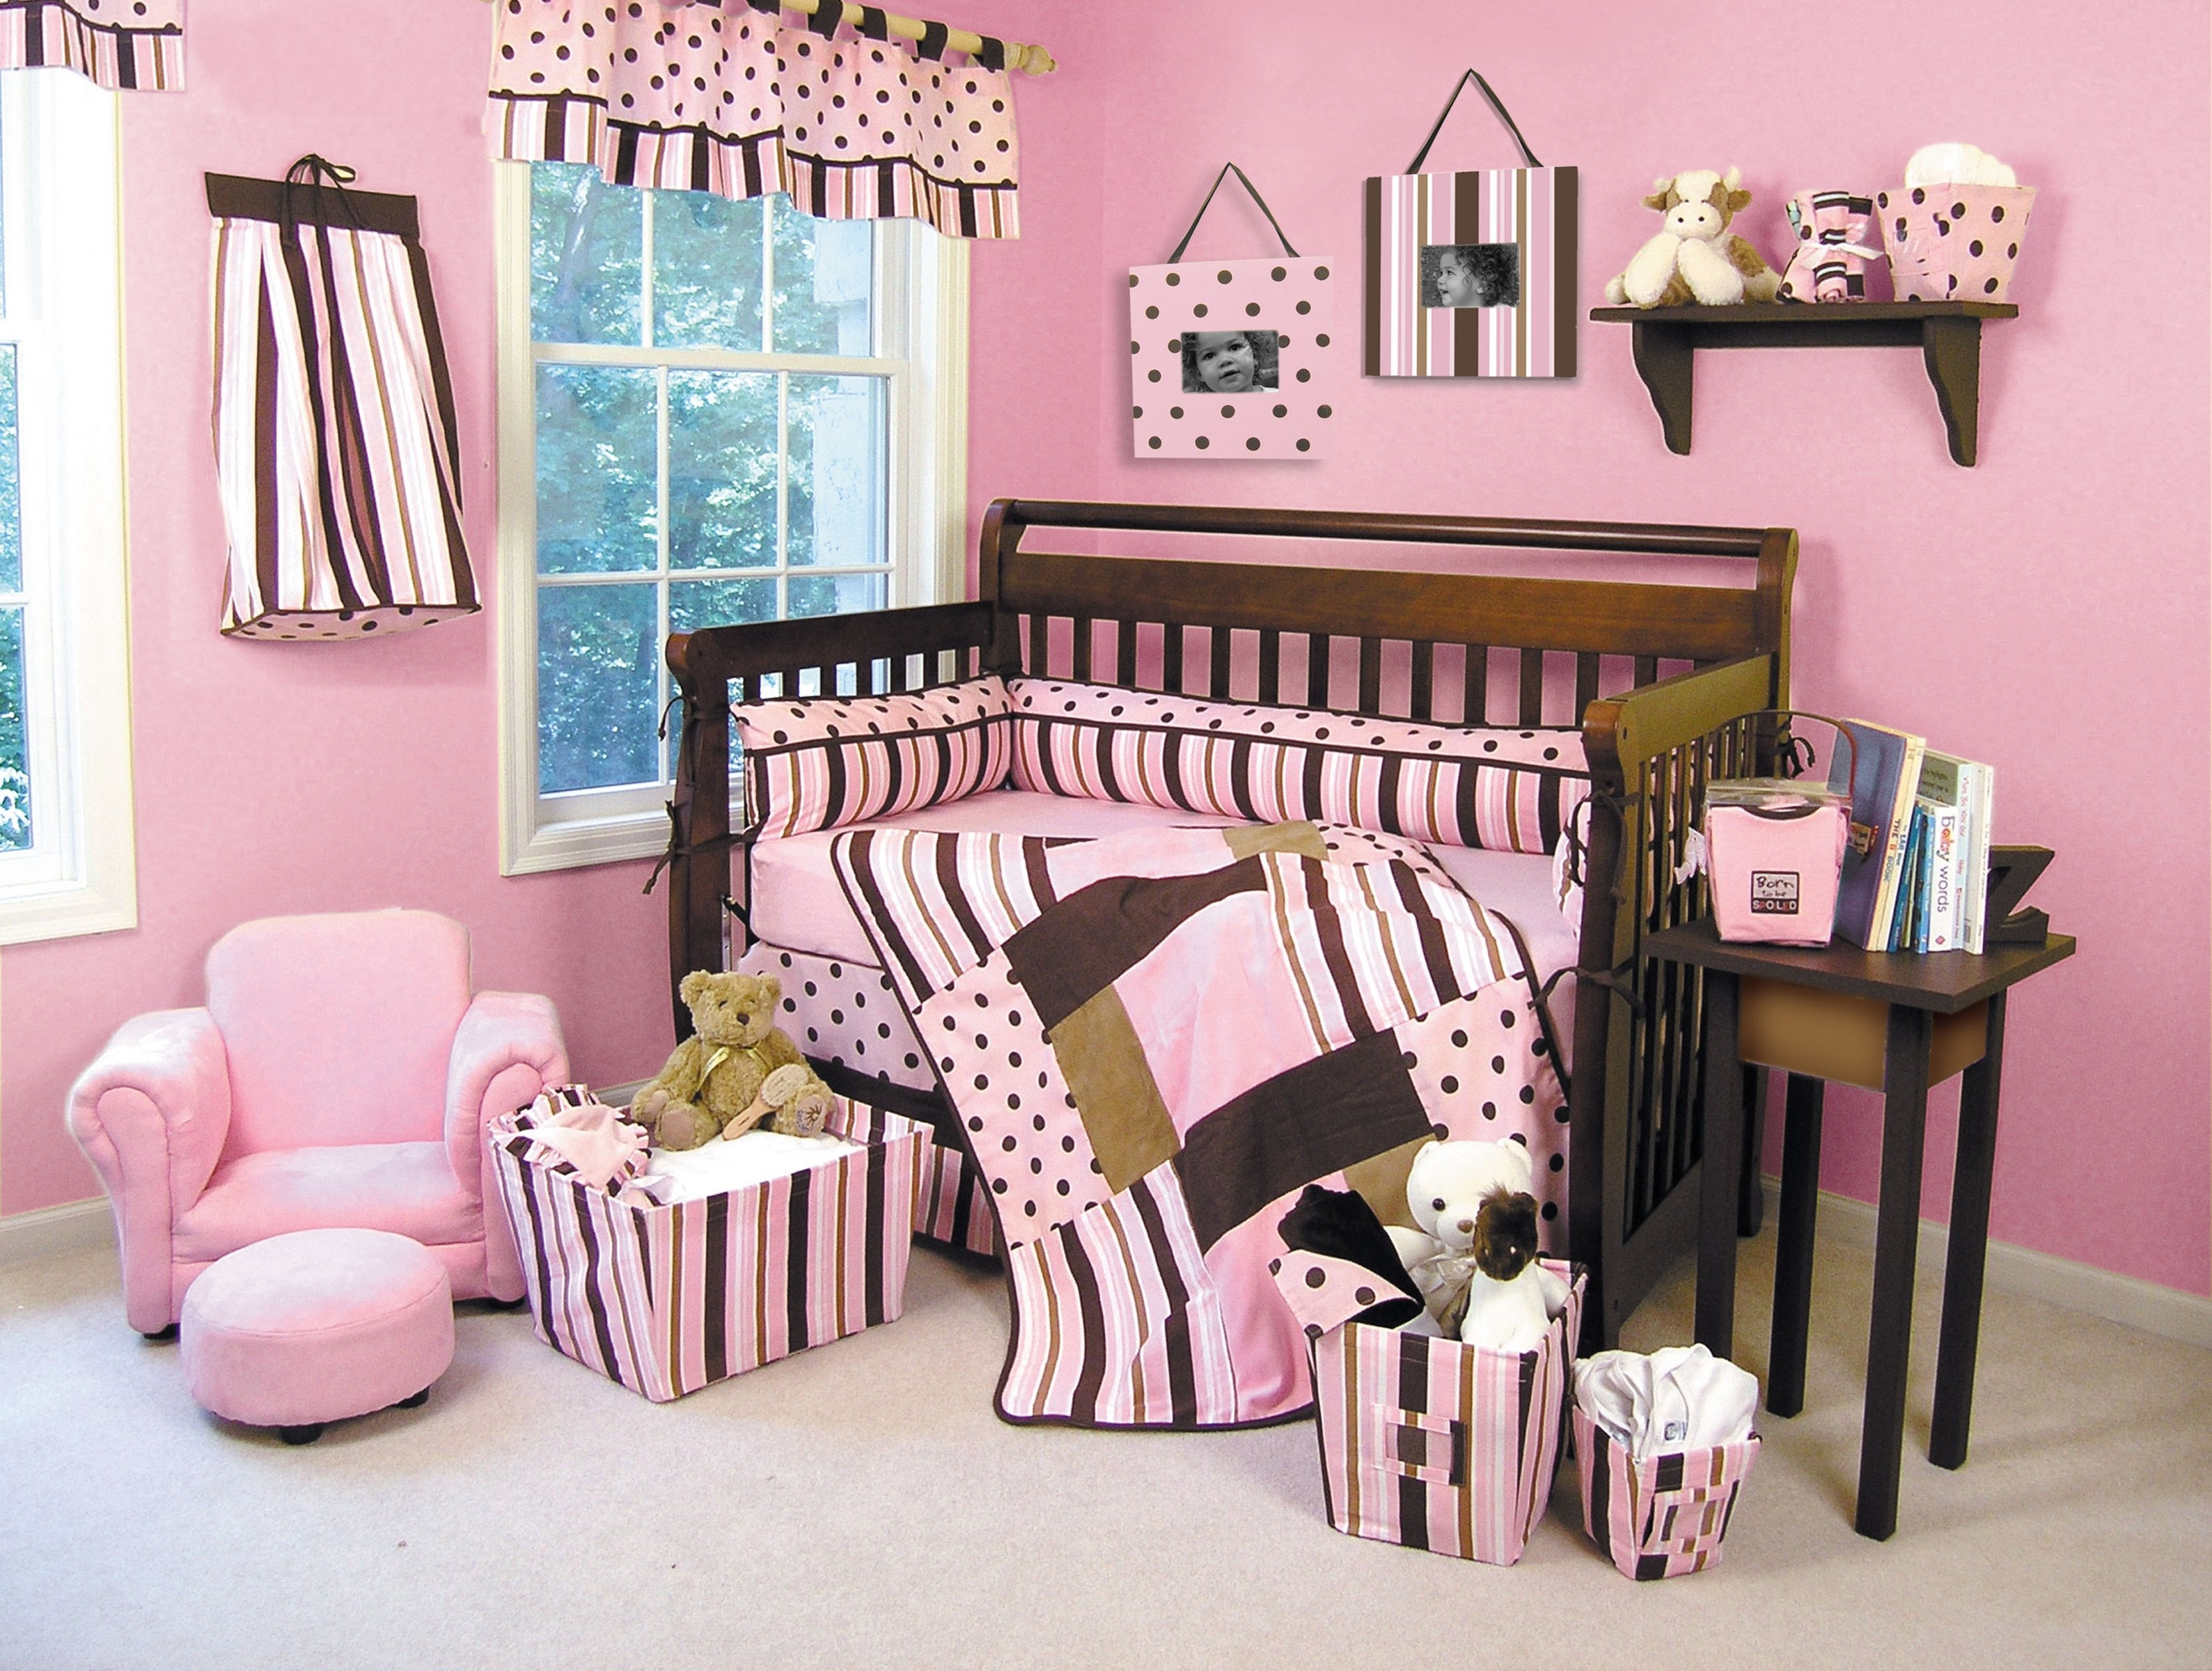 10 Lovely Pink And Brown Nursery Ideas pink and chocolate brown crib bedding ideas nursery homebaby 2020